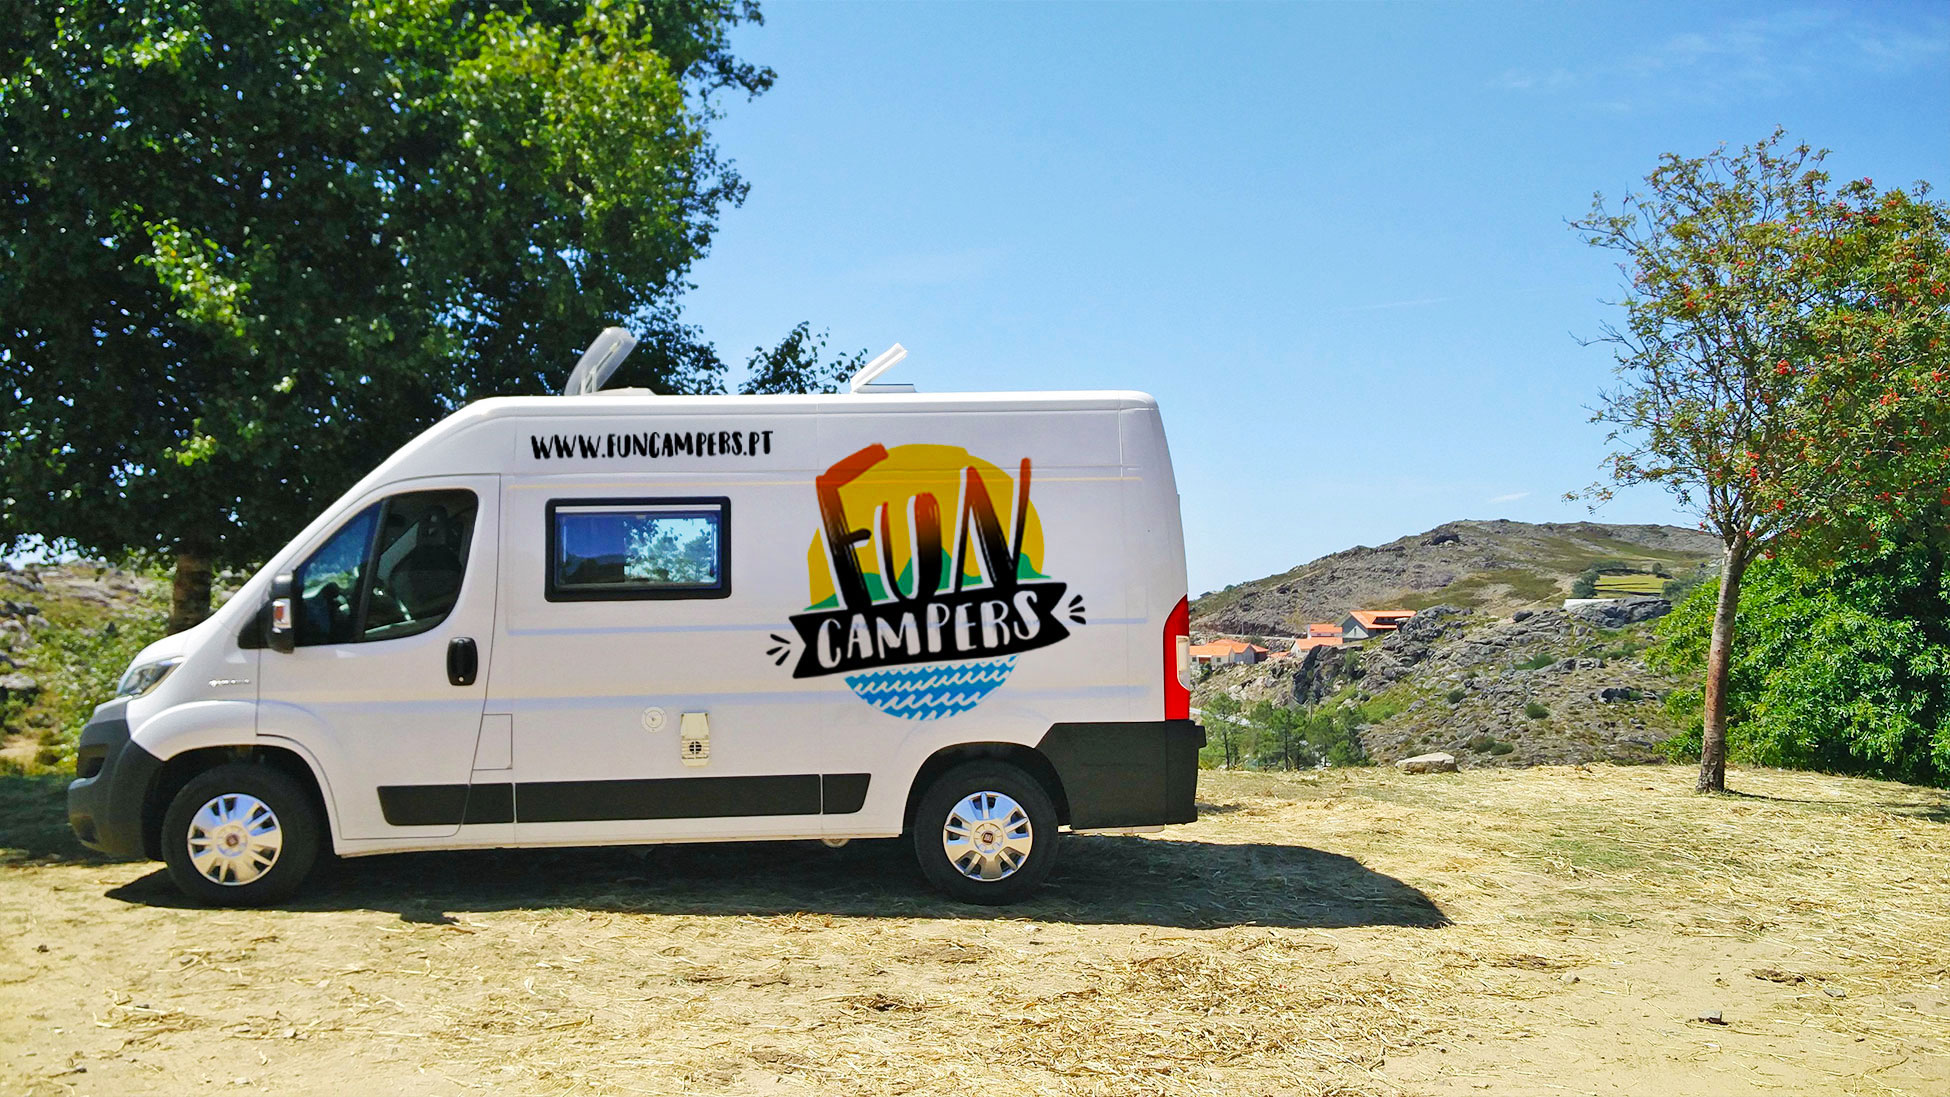 FUNCAMPERS. Perfect vans for your hollidays!